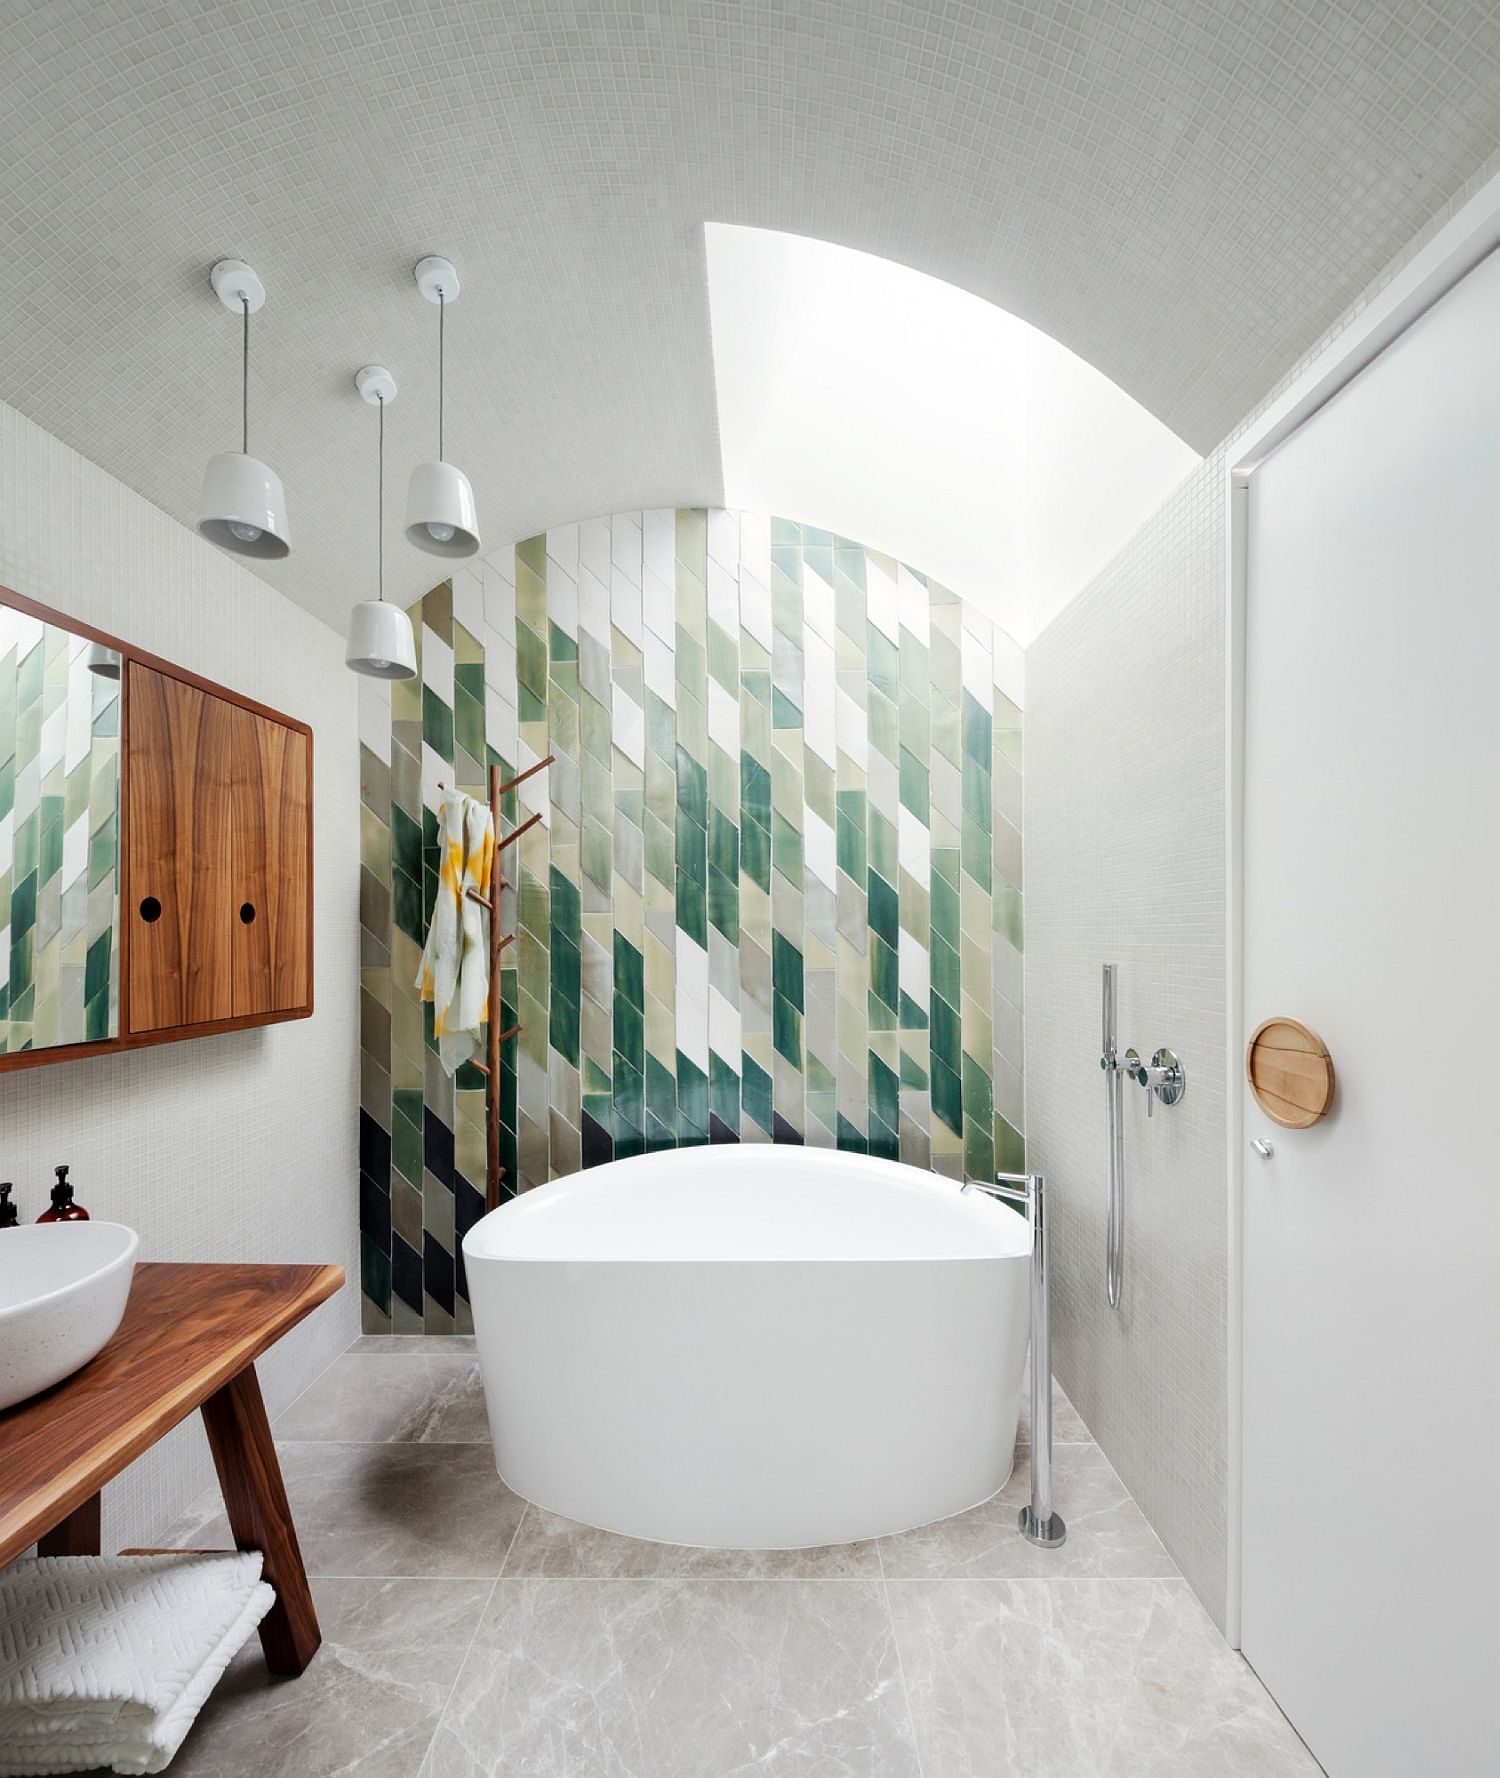 Fabulous and colorful tiled backsplash for the contemporary bathroom